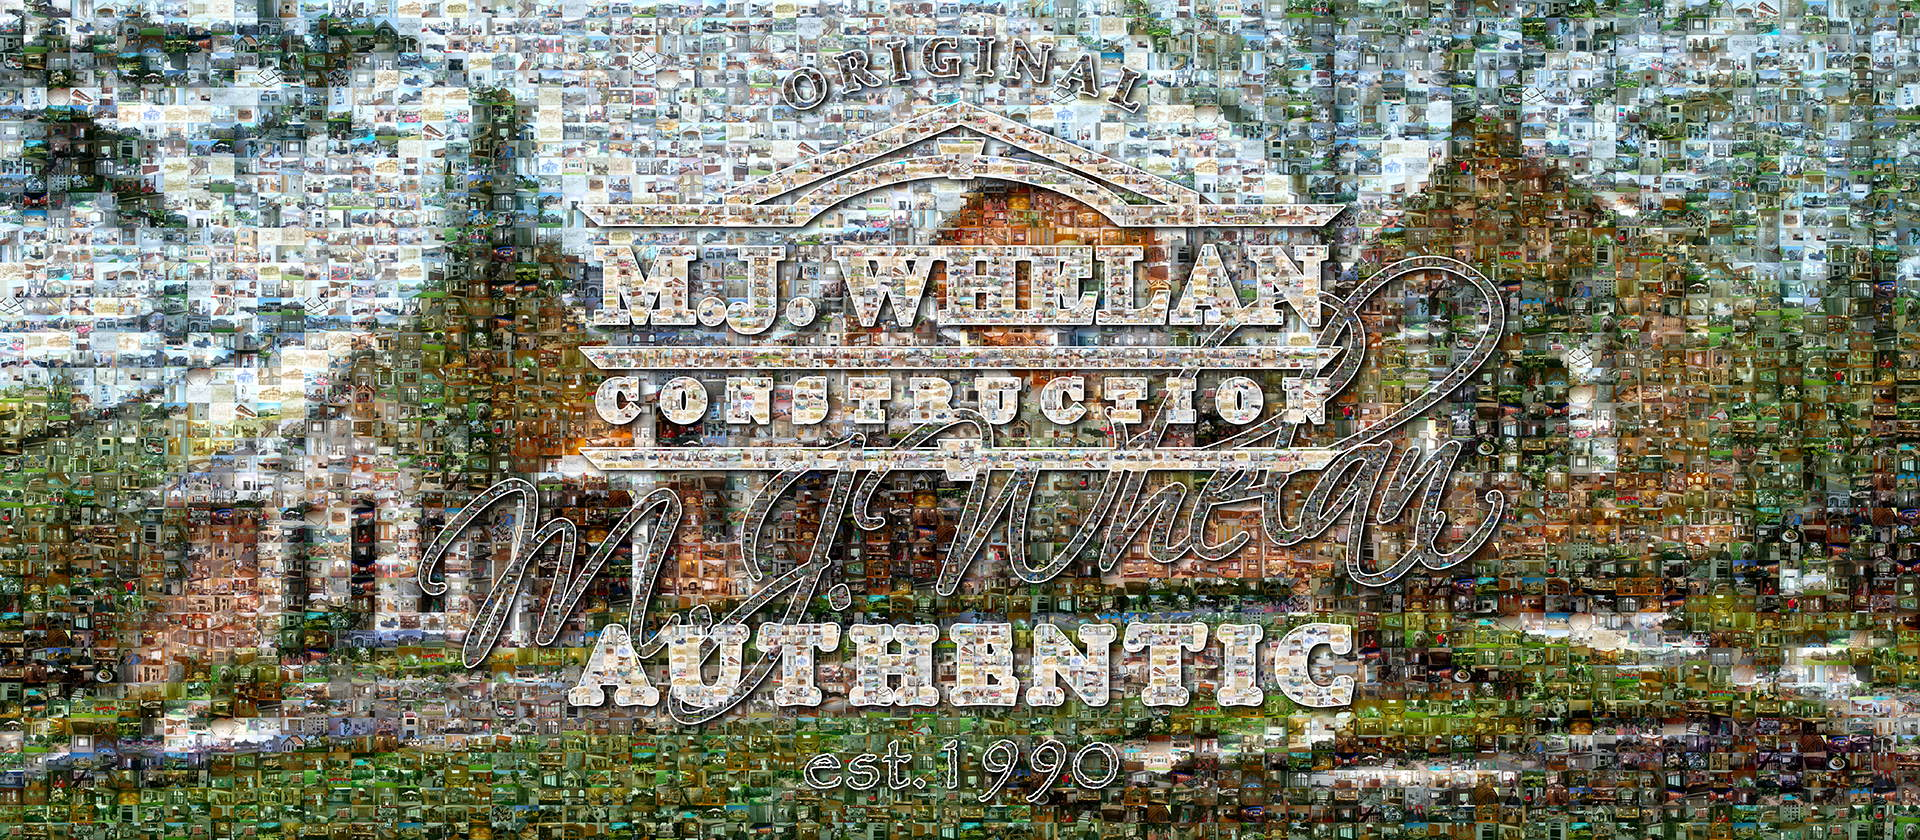 photo mosaic 1155 construction images make up this company mural for M. J. Whelan Construction